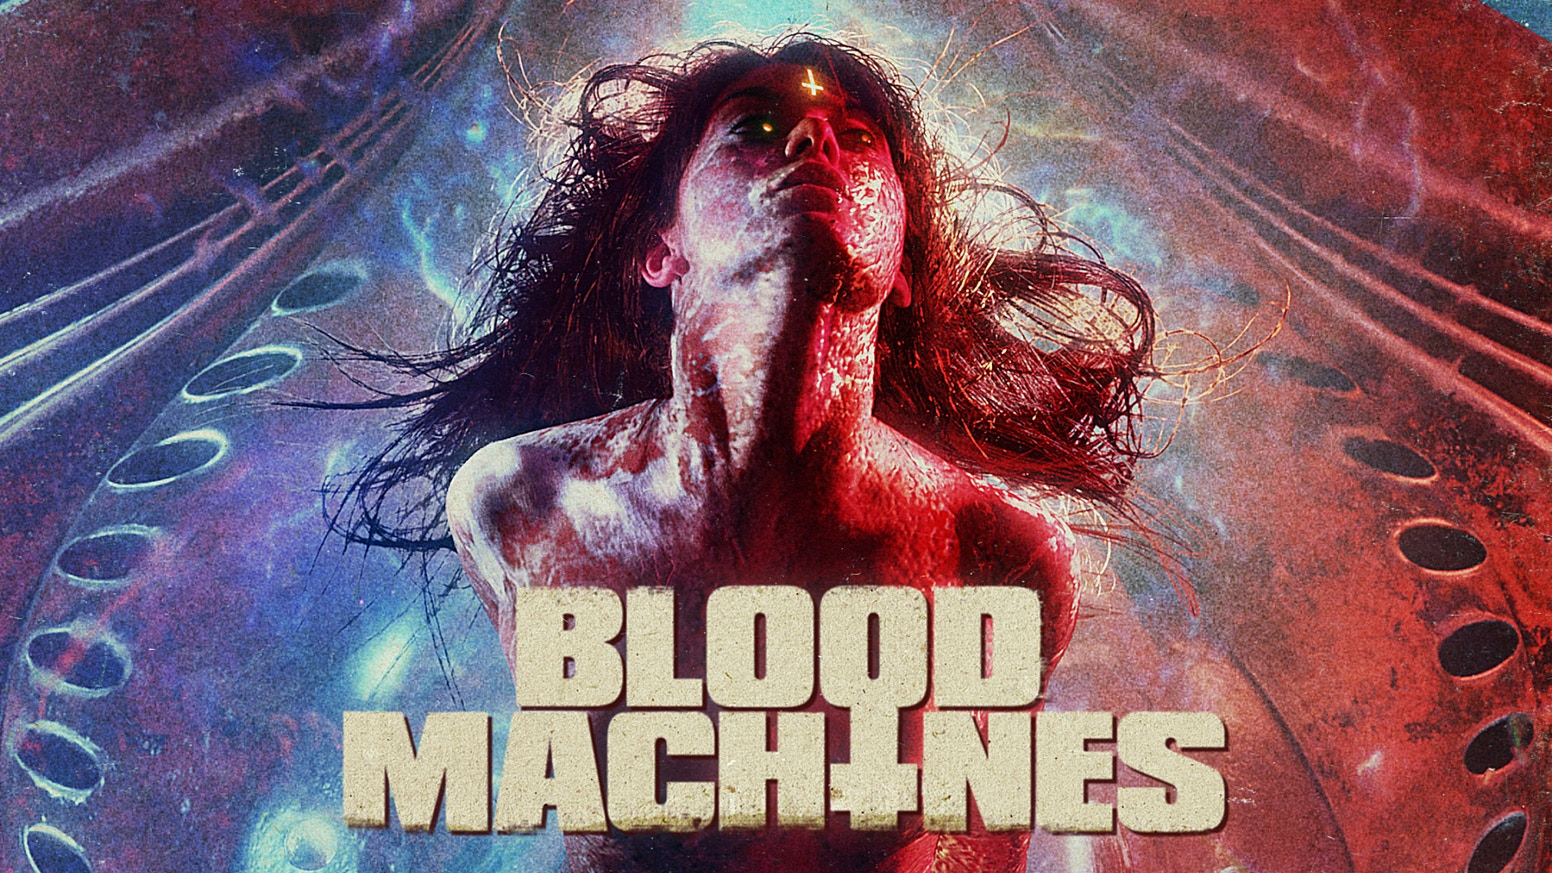 Blood Machines Turbo Killer 2 By Seth Ickerman Kickstarter How To Wire A Structured Wiring Panel Gohts Wiki Live Action Space Opera Carpenter Brut Female Ghost Challenges